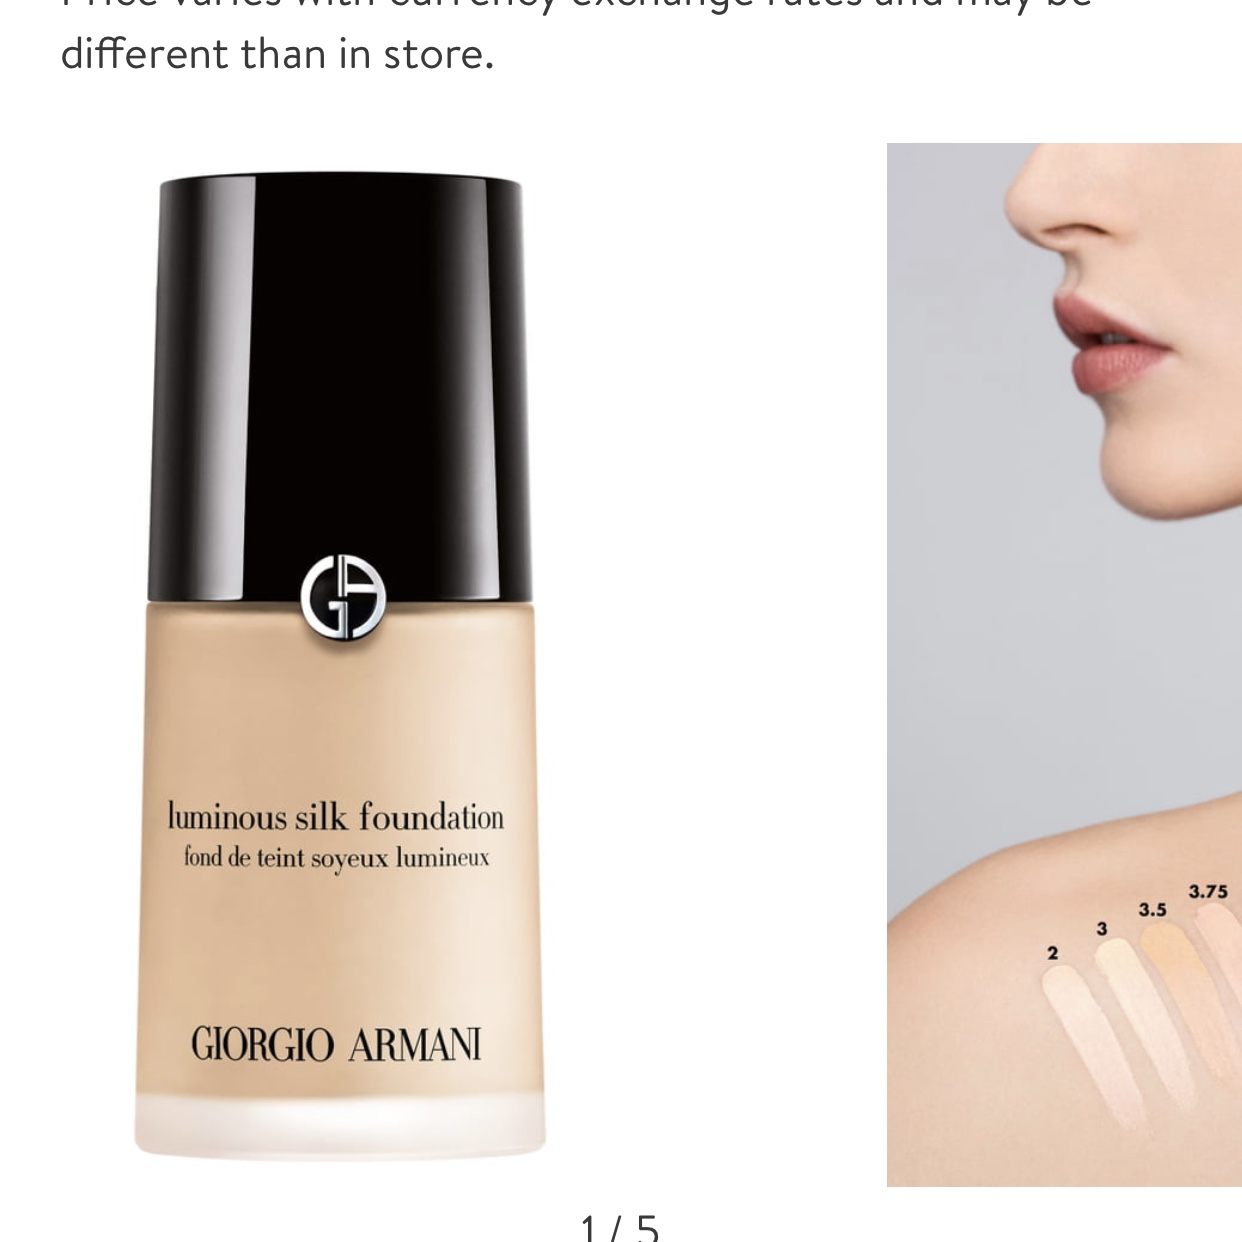 Giorgio Armani Luminous Silk Shade 3 Off 70 Buy